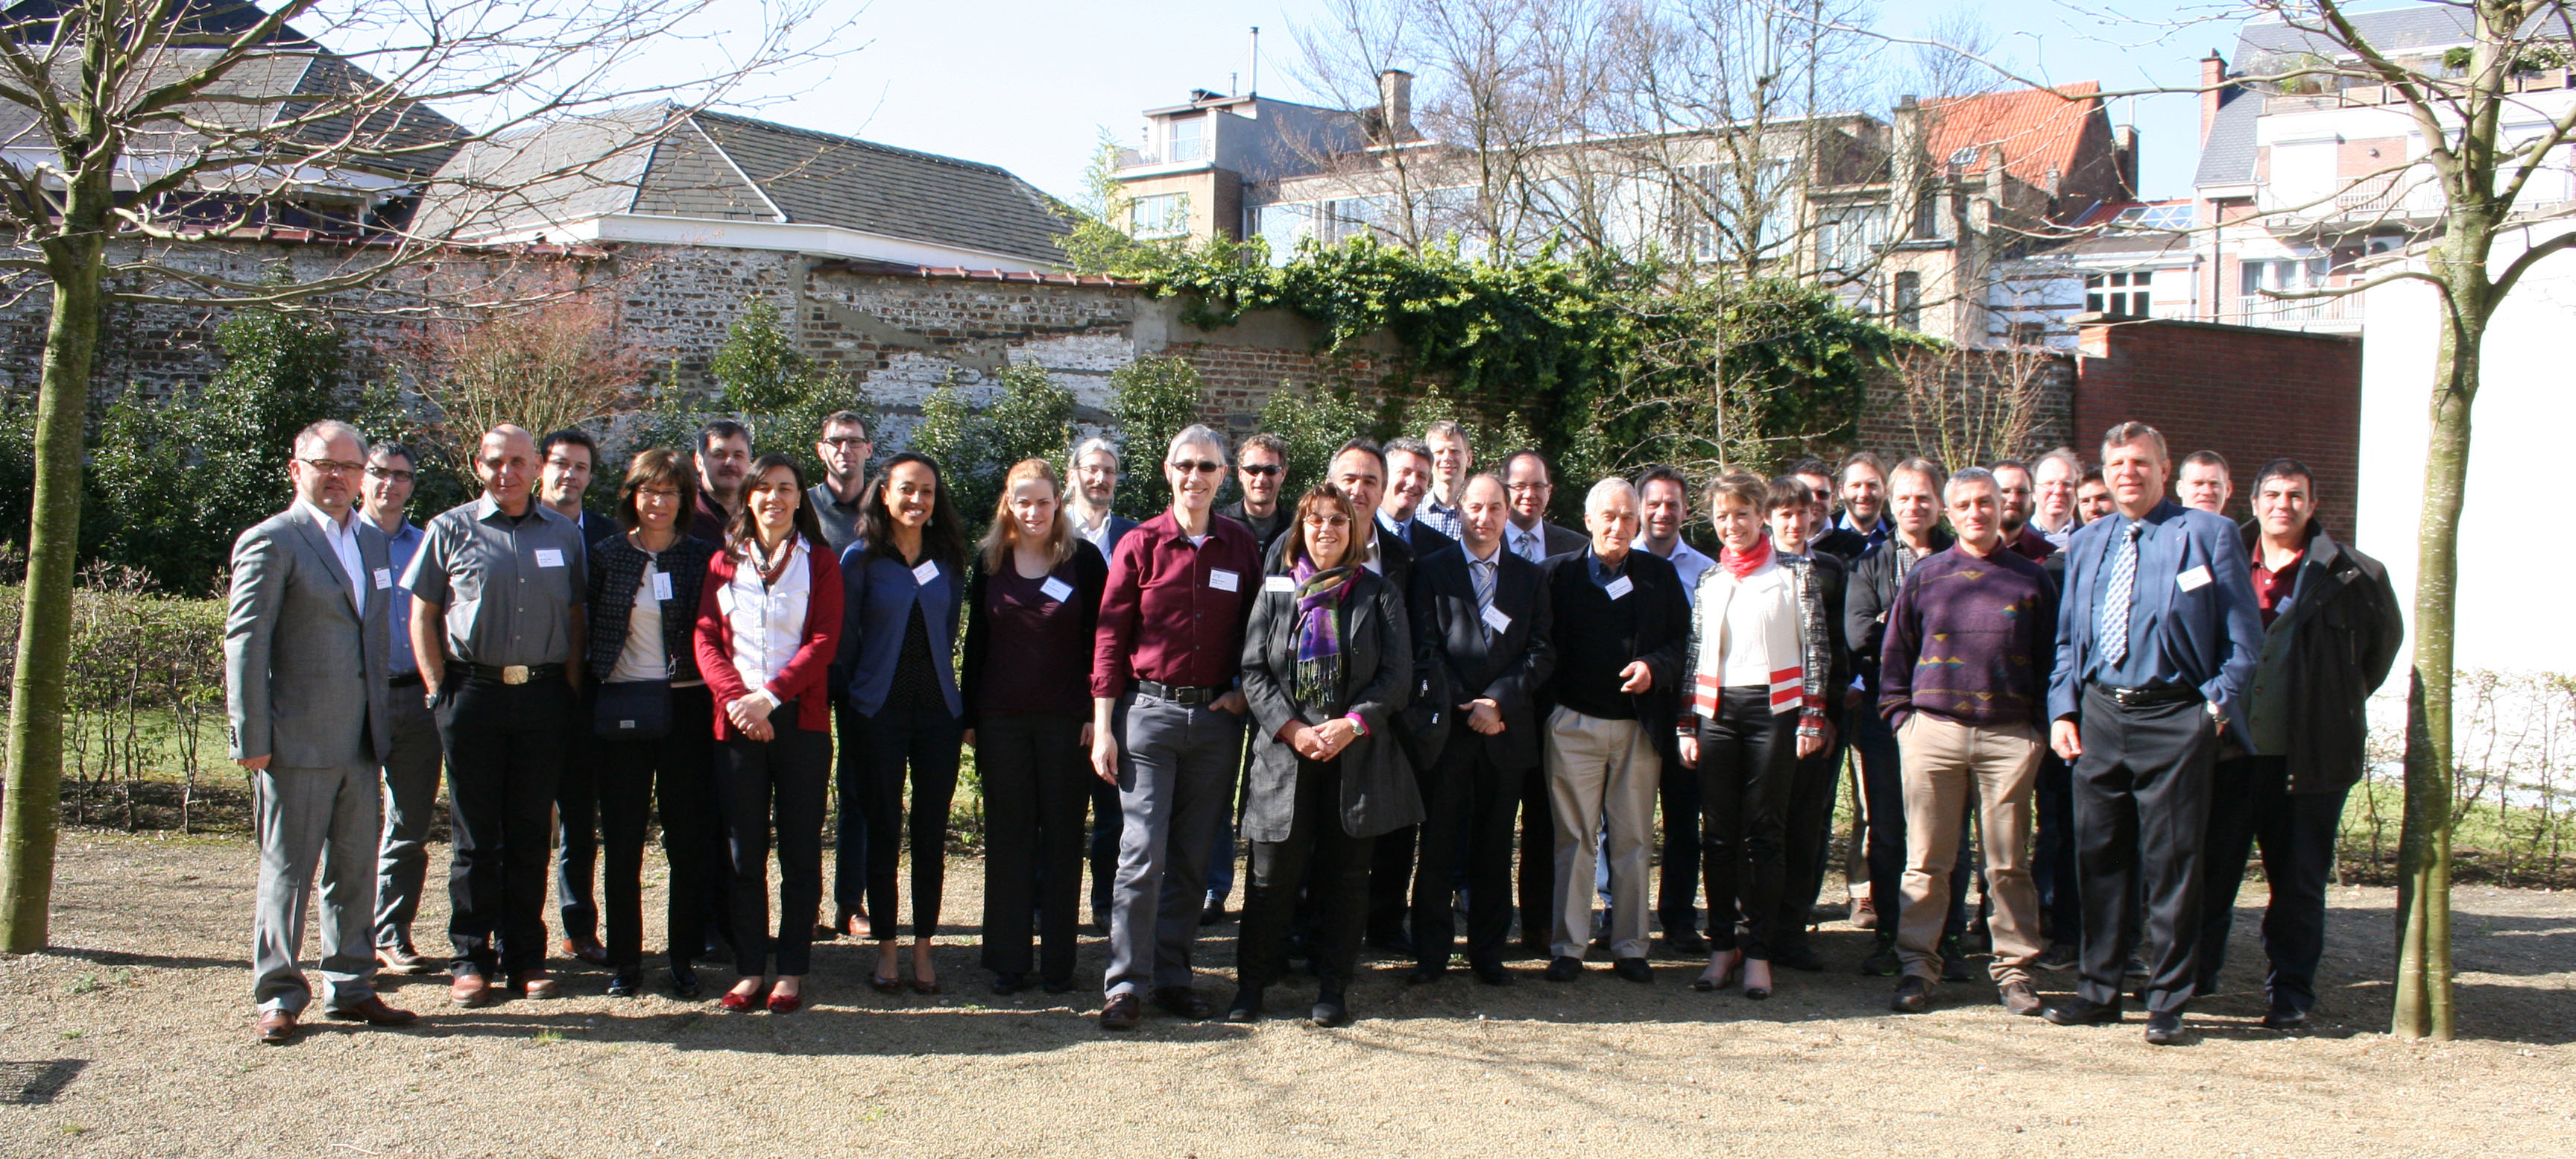 EUFAR2 kick-off meeting and GA01 - Group Photo, BELSPO Offices, Brussels, March 2014